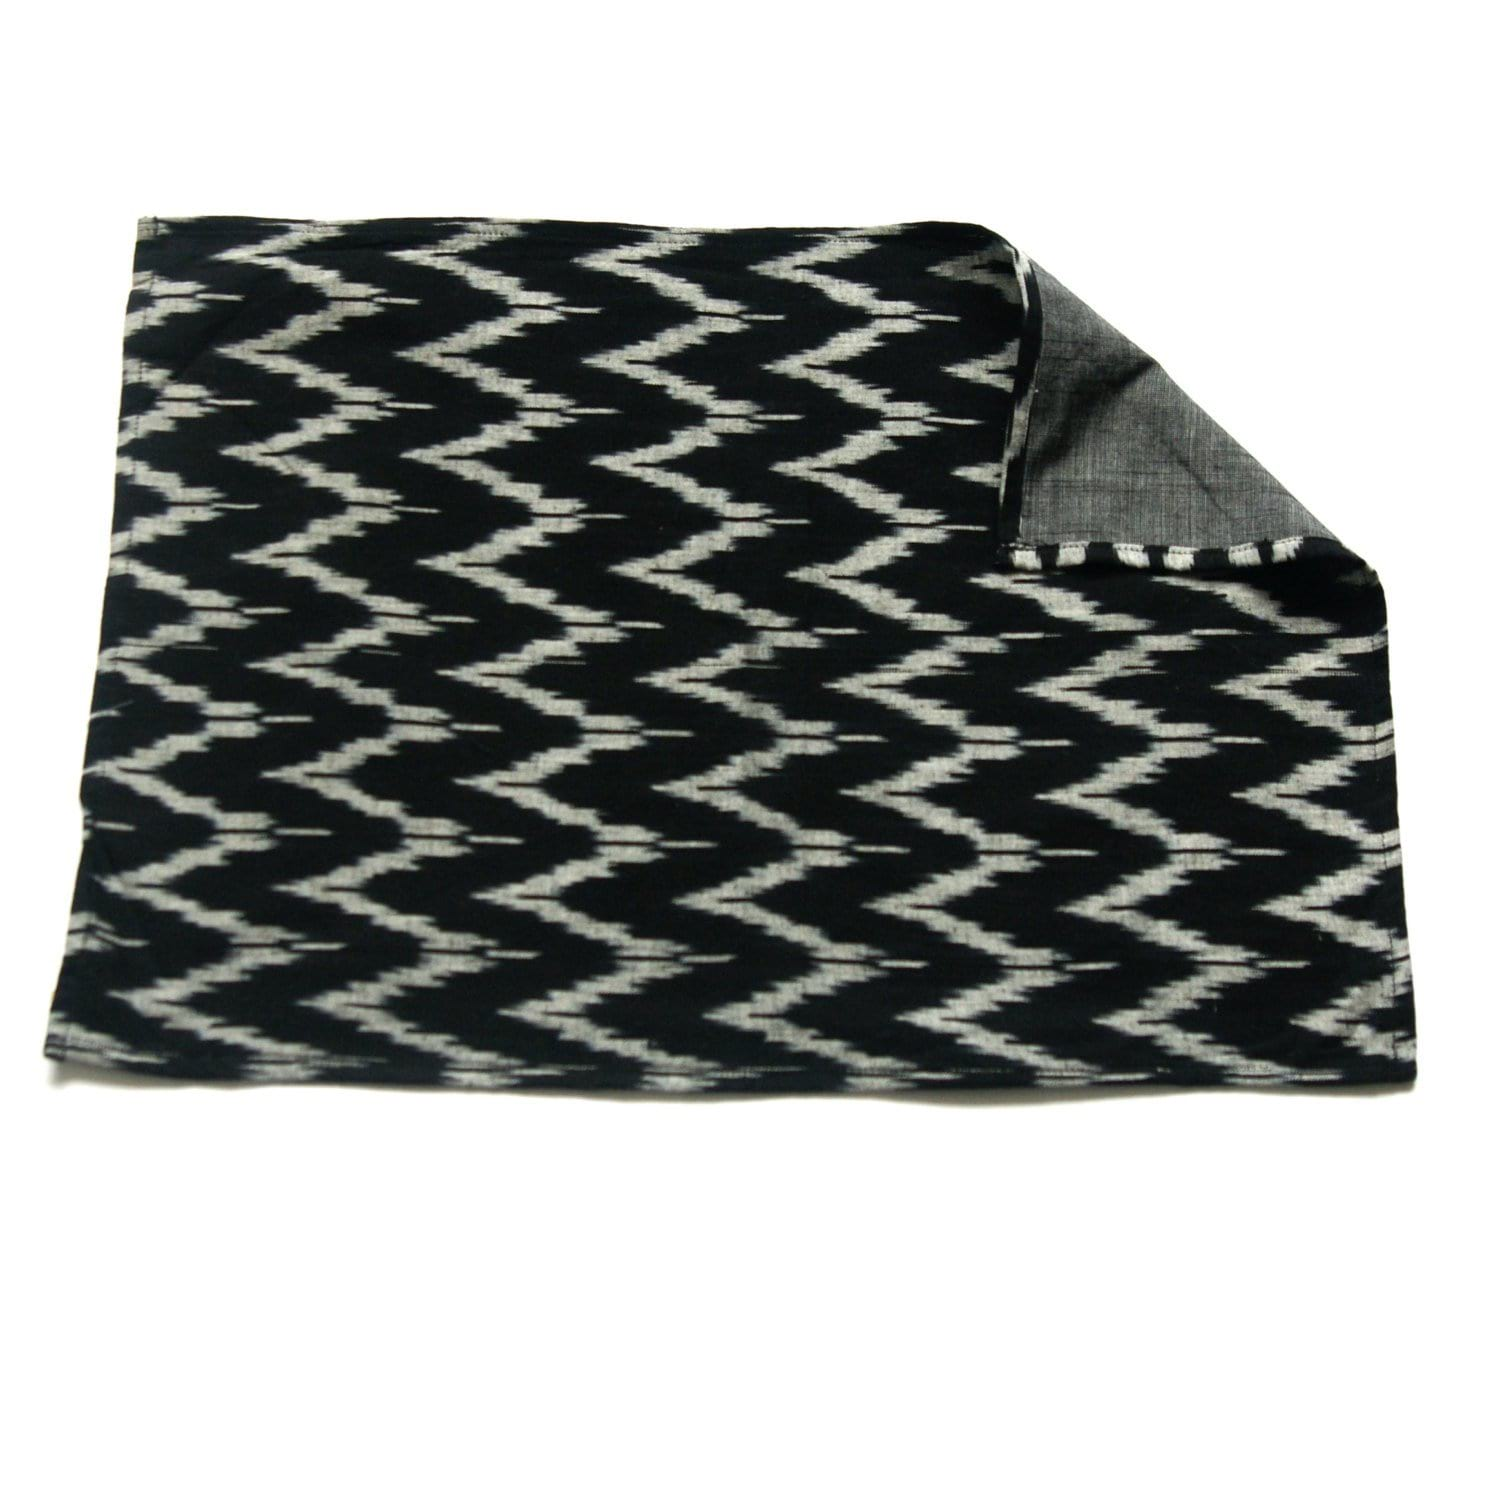 Placemat Handwoven Black White and Grey Zig Zag